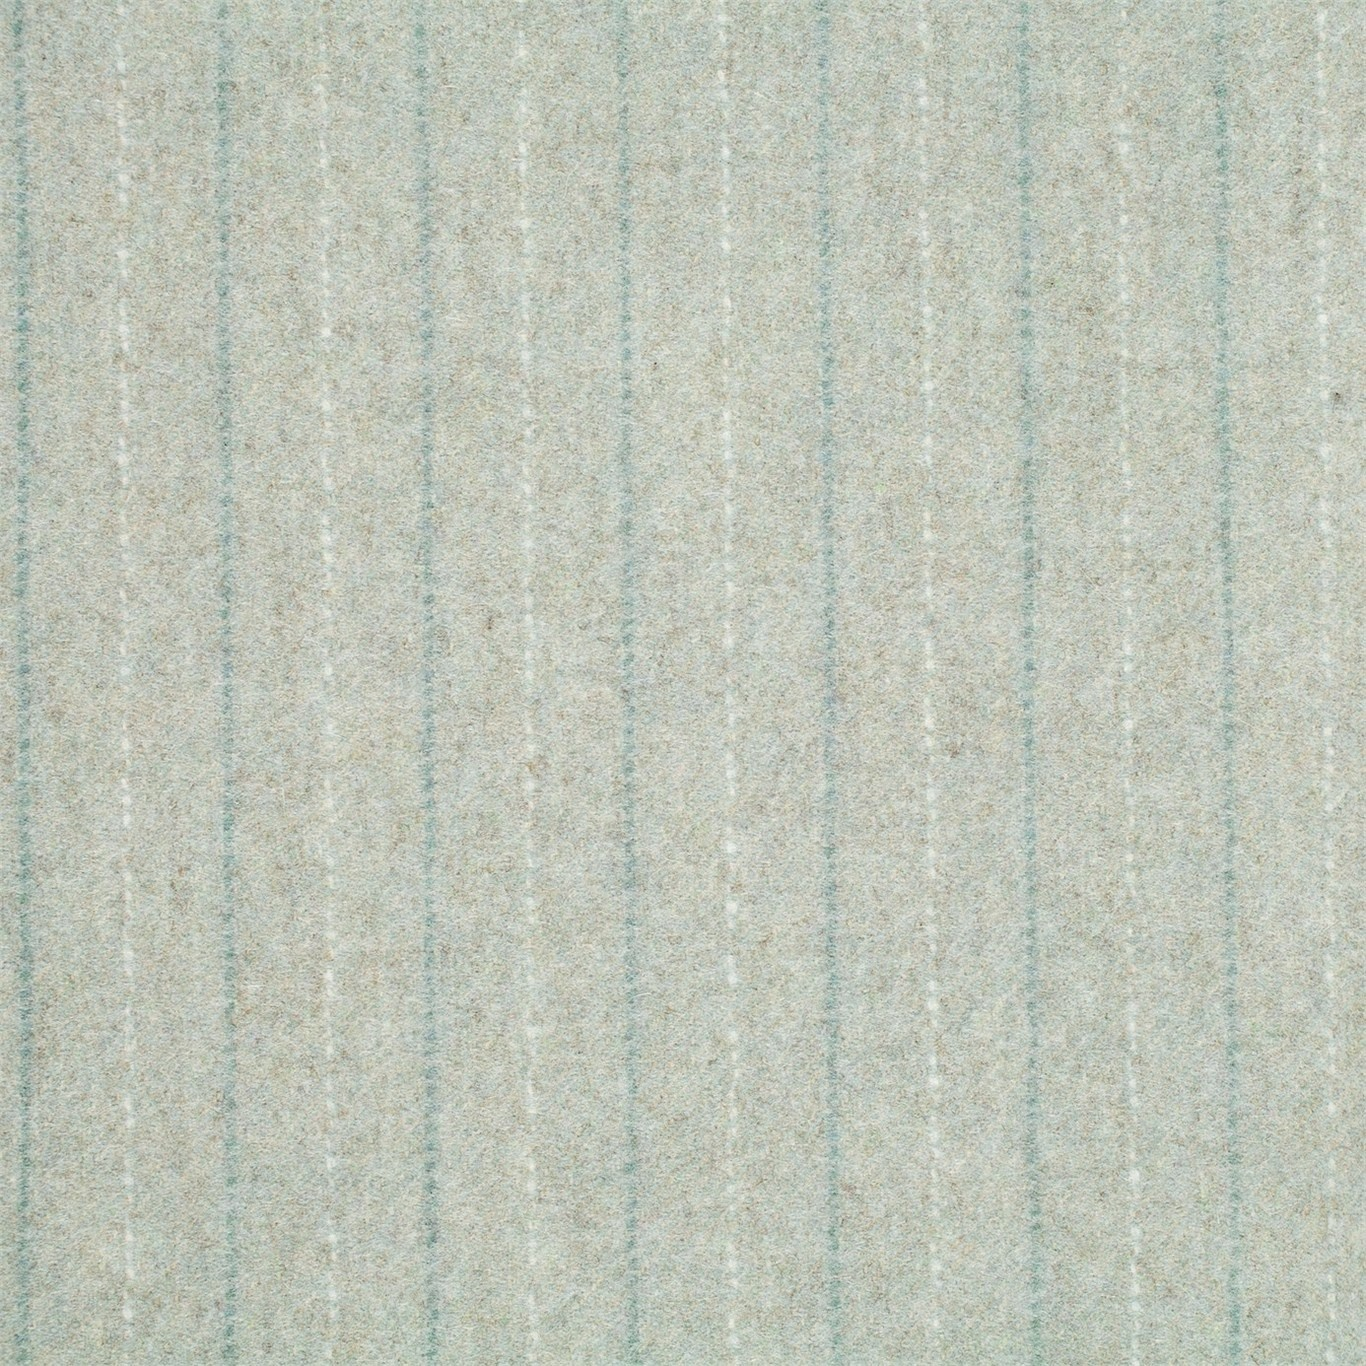 Image of Sanderson Tailor Eggshell Fabric 233254